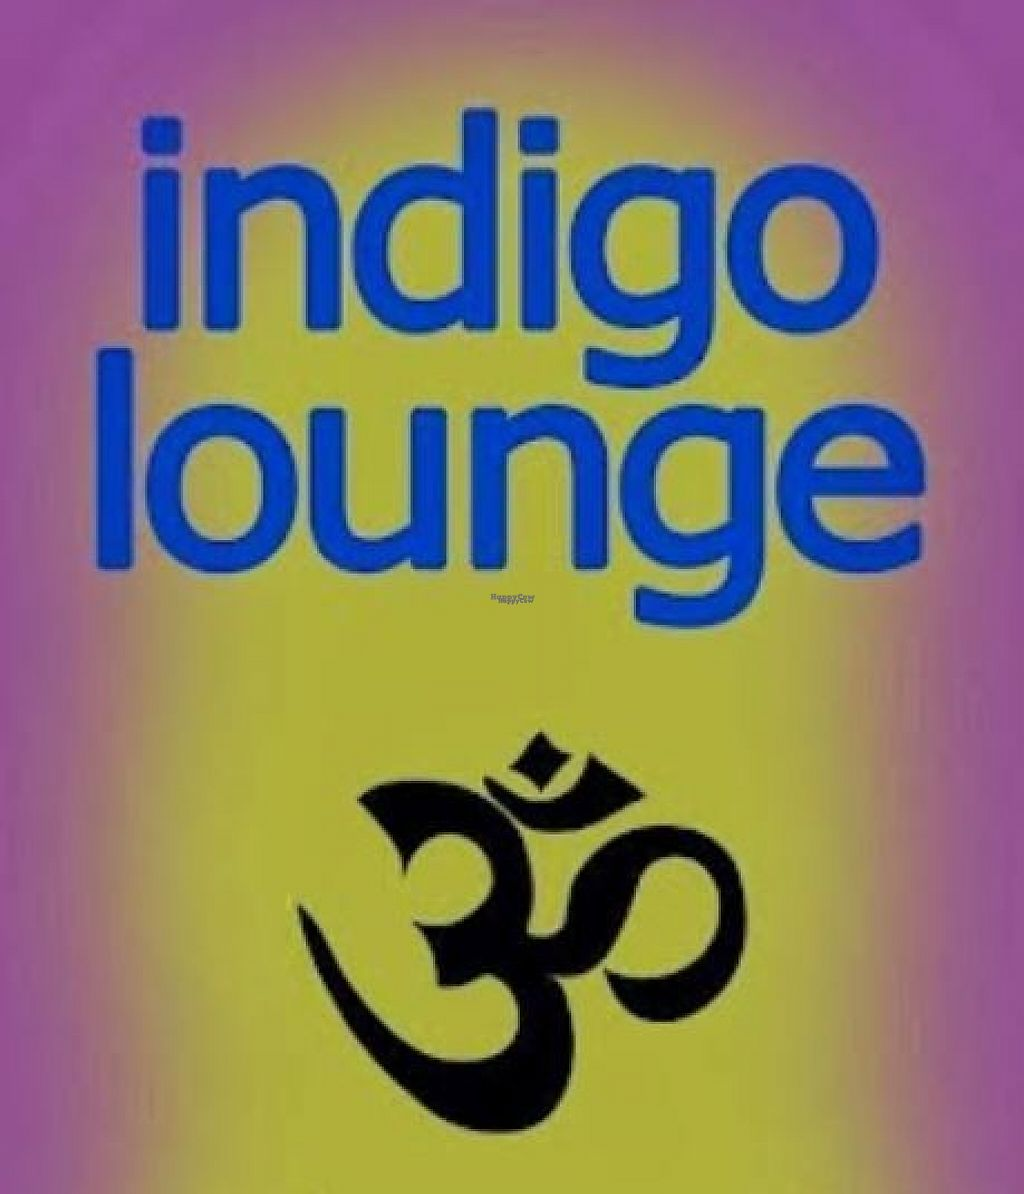 """Photo of Indigo Lounge  by <a href=""""/members/profile/ReneeRenneboog"""">ReneeRenneboog</a> <br/>logo <br/> April 20, 2017  - <a href='/contact/abuse/image/70138/250267'>Report</a>"""